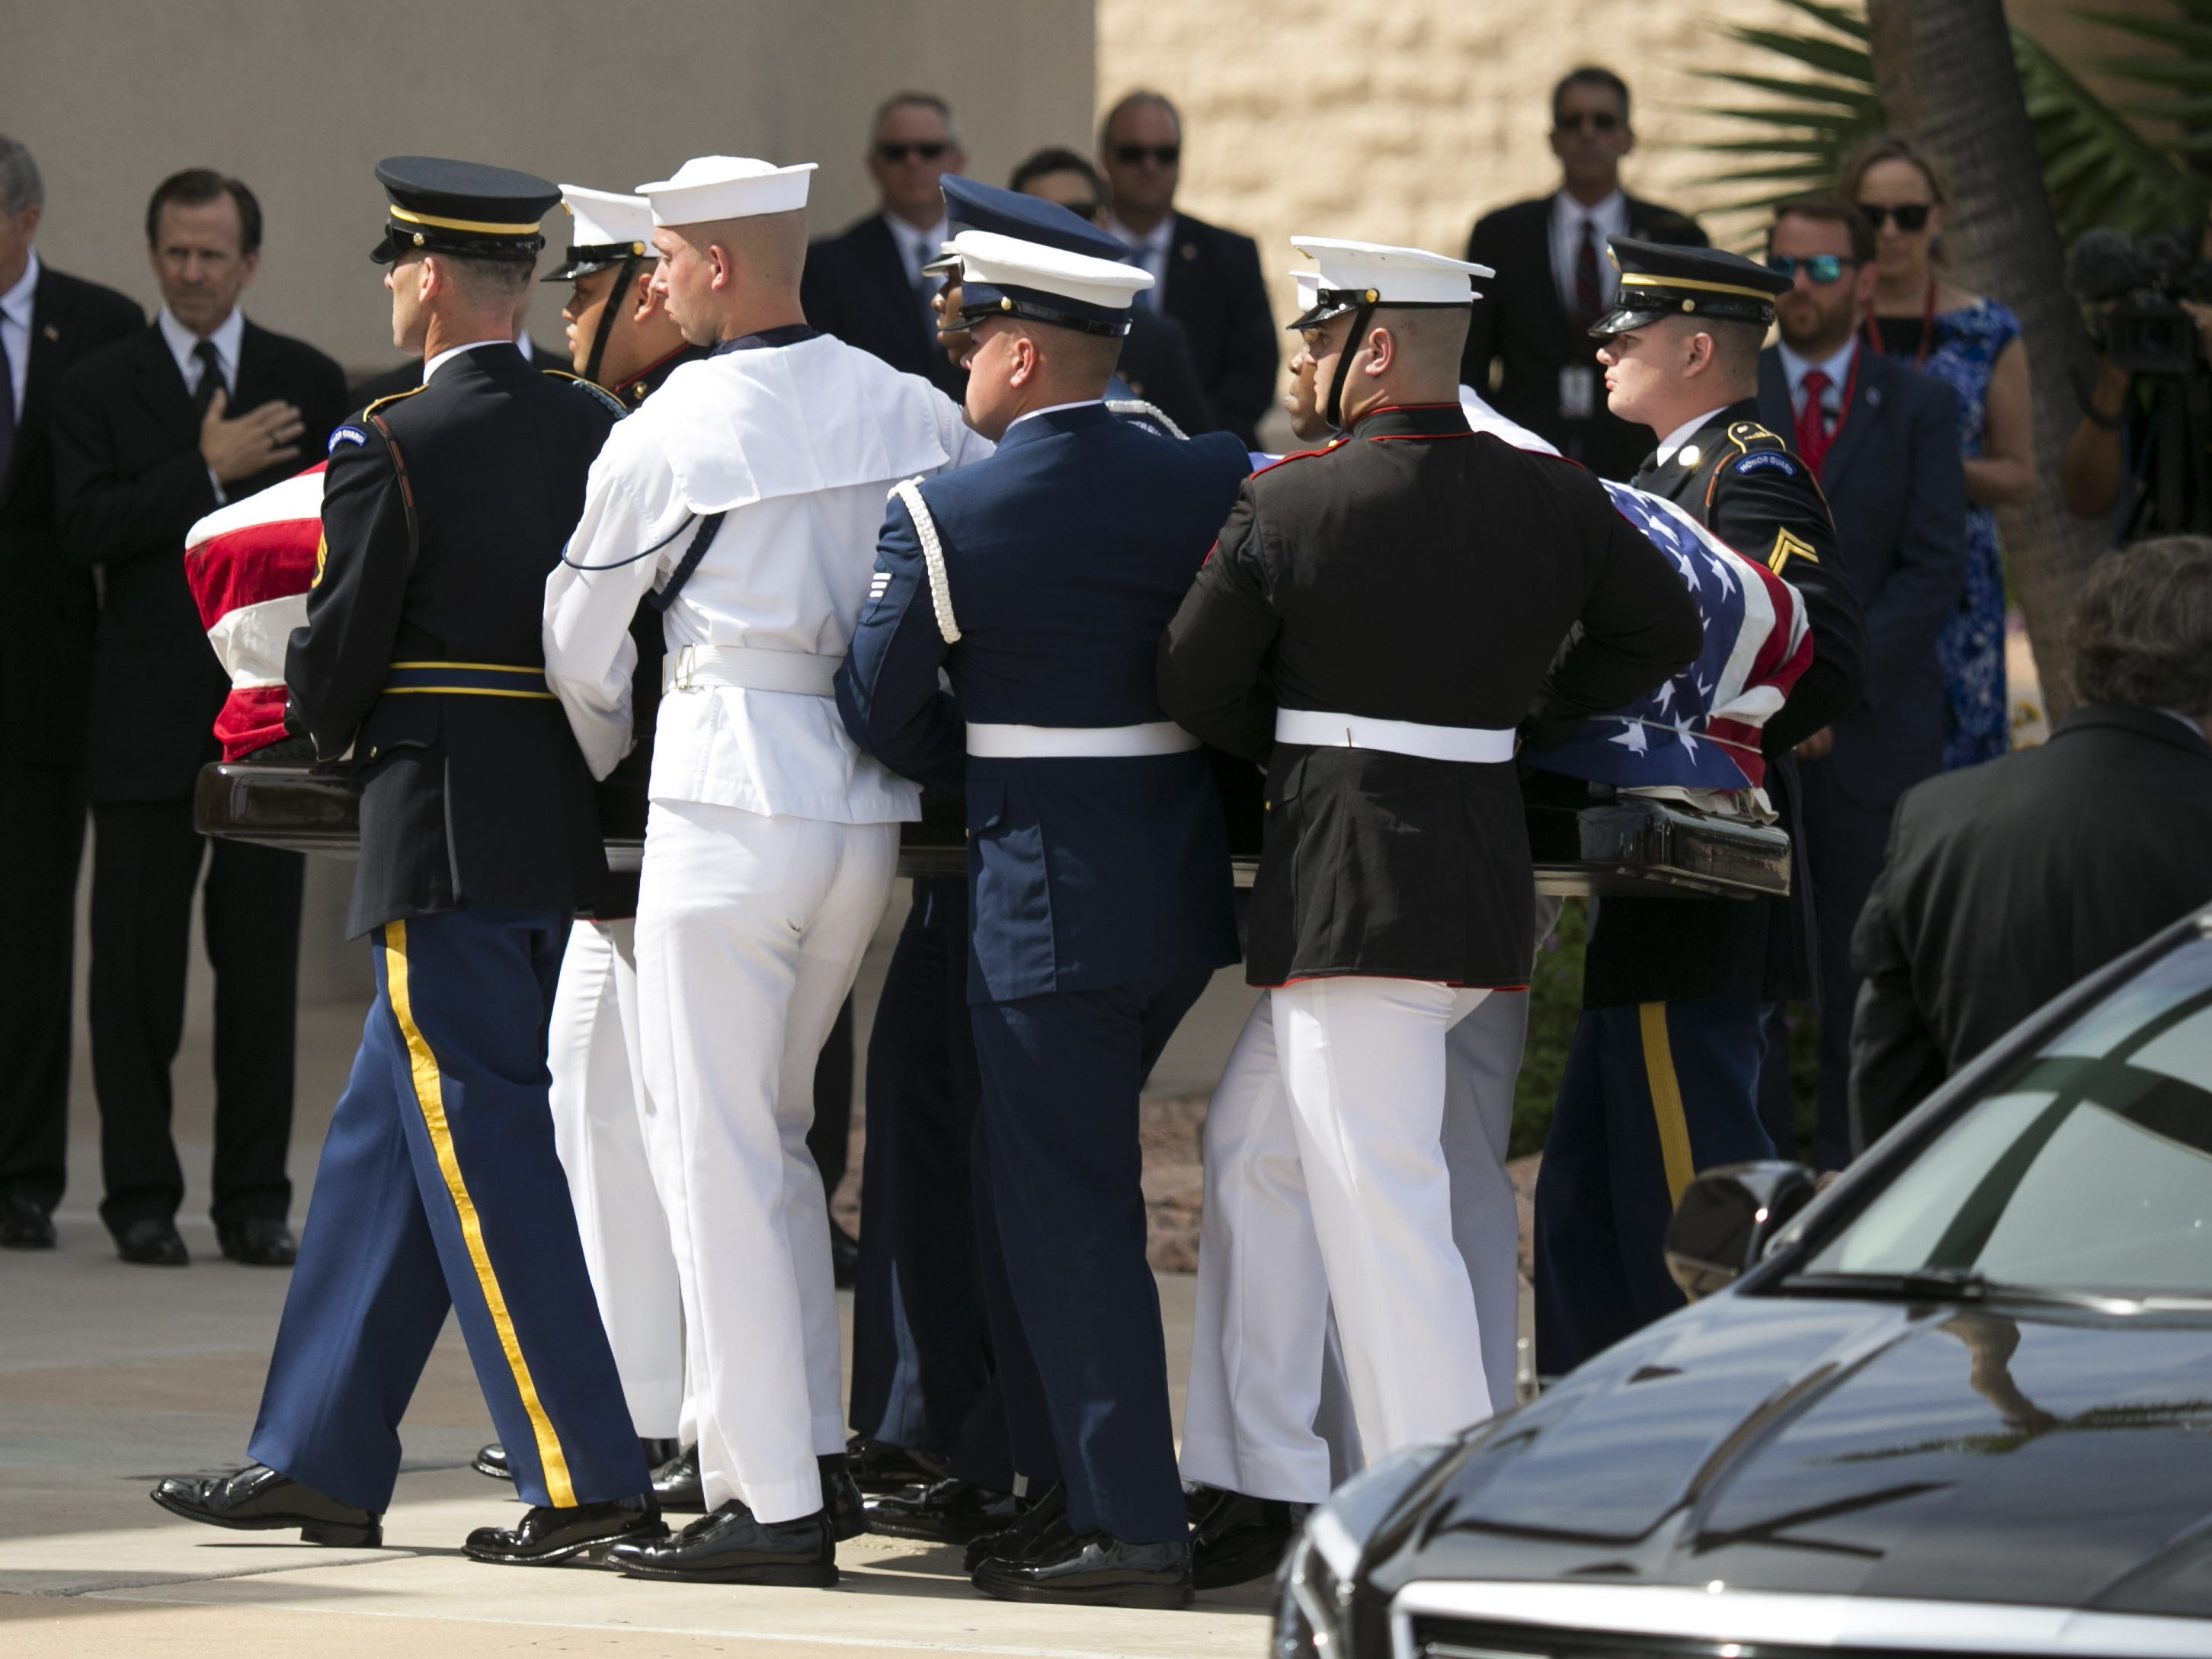 Senator John McCain's flag draped casket is carried by members of the United States military during a memorial service for Senator John McCain at North Phoenix Baptist Church in Phoenix, Aug. 30, 2018.